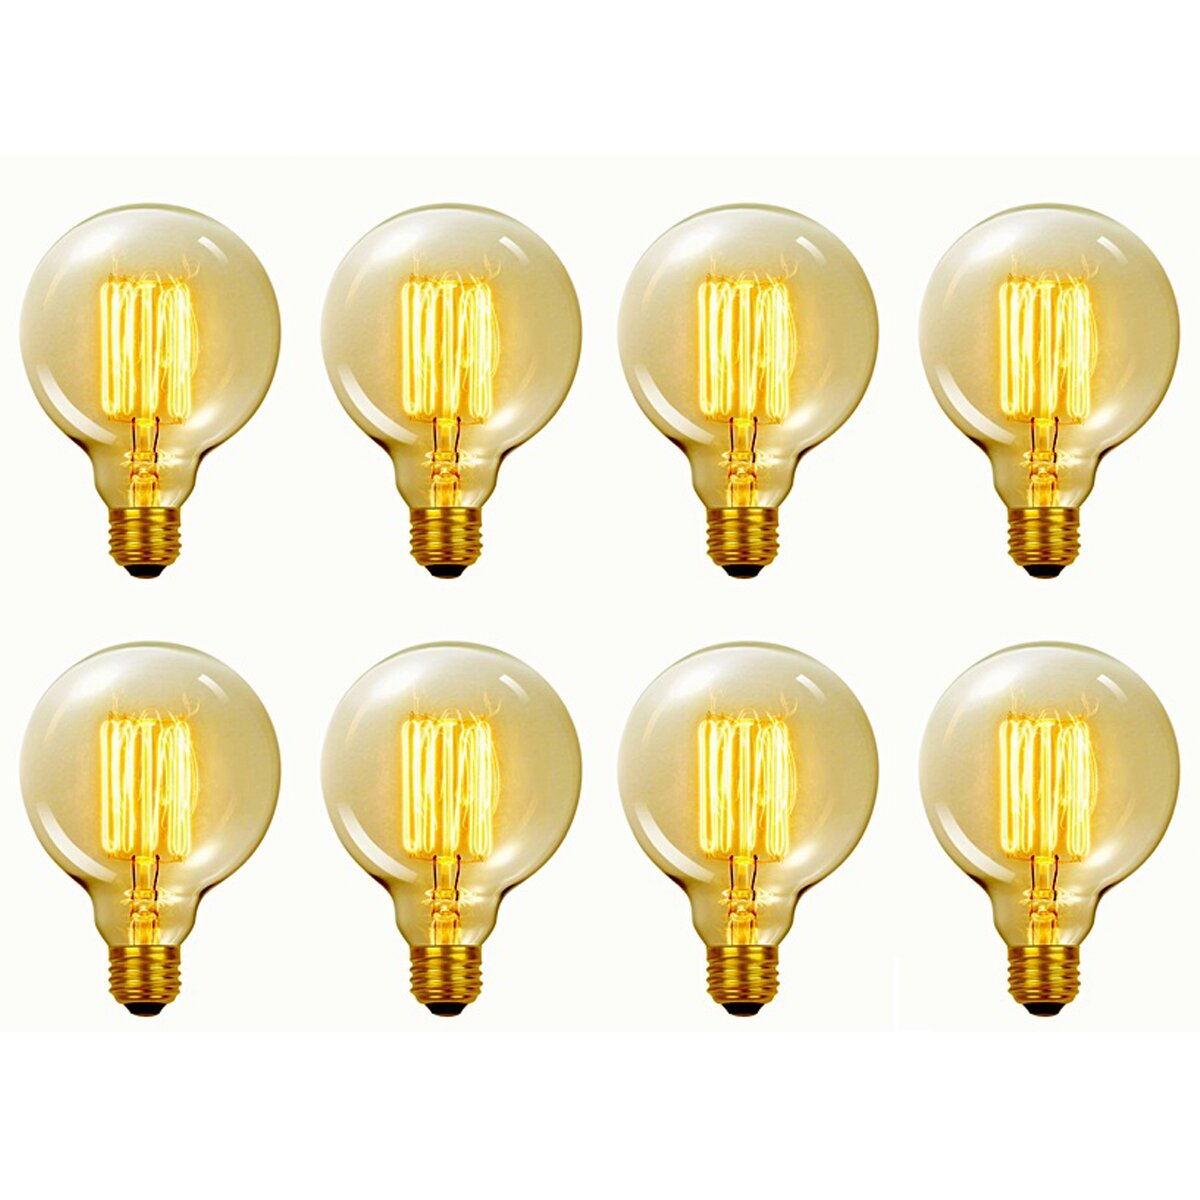 Vanity Light Bulbs Daylight : Globe Electric Company Vintage Edison 60 Watt (2700K) G40 Vanity Tungsten Incandescent Filament ...